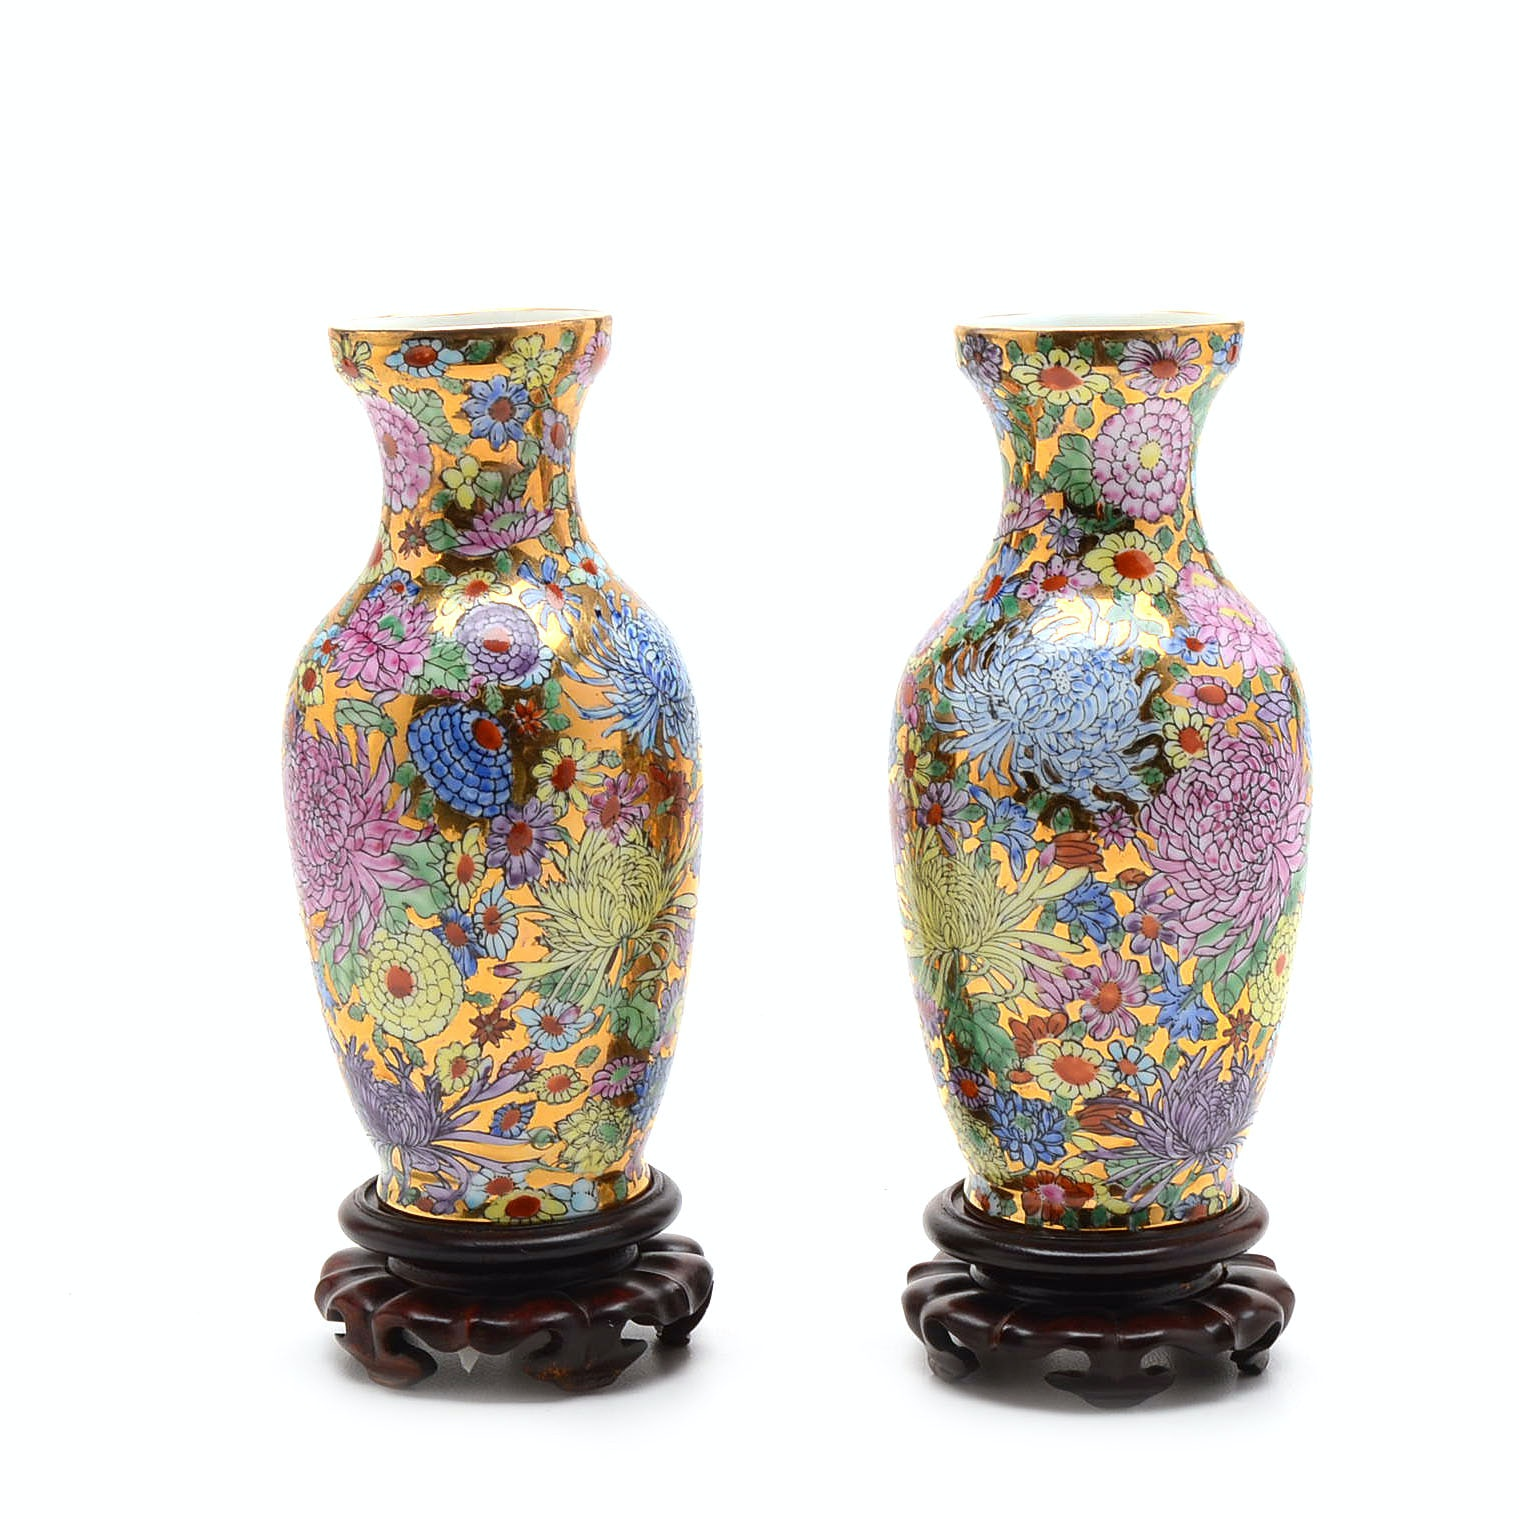 Hand-Painted Chinese Vases with Stands